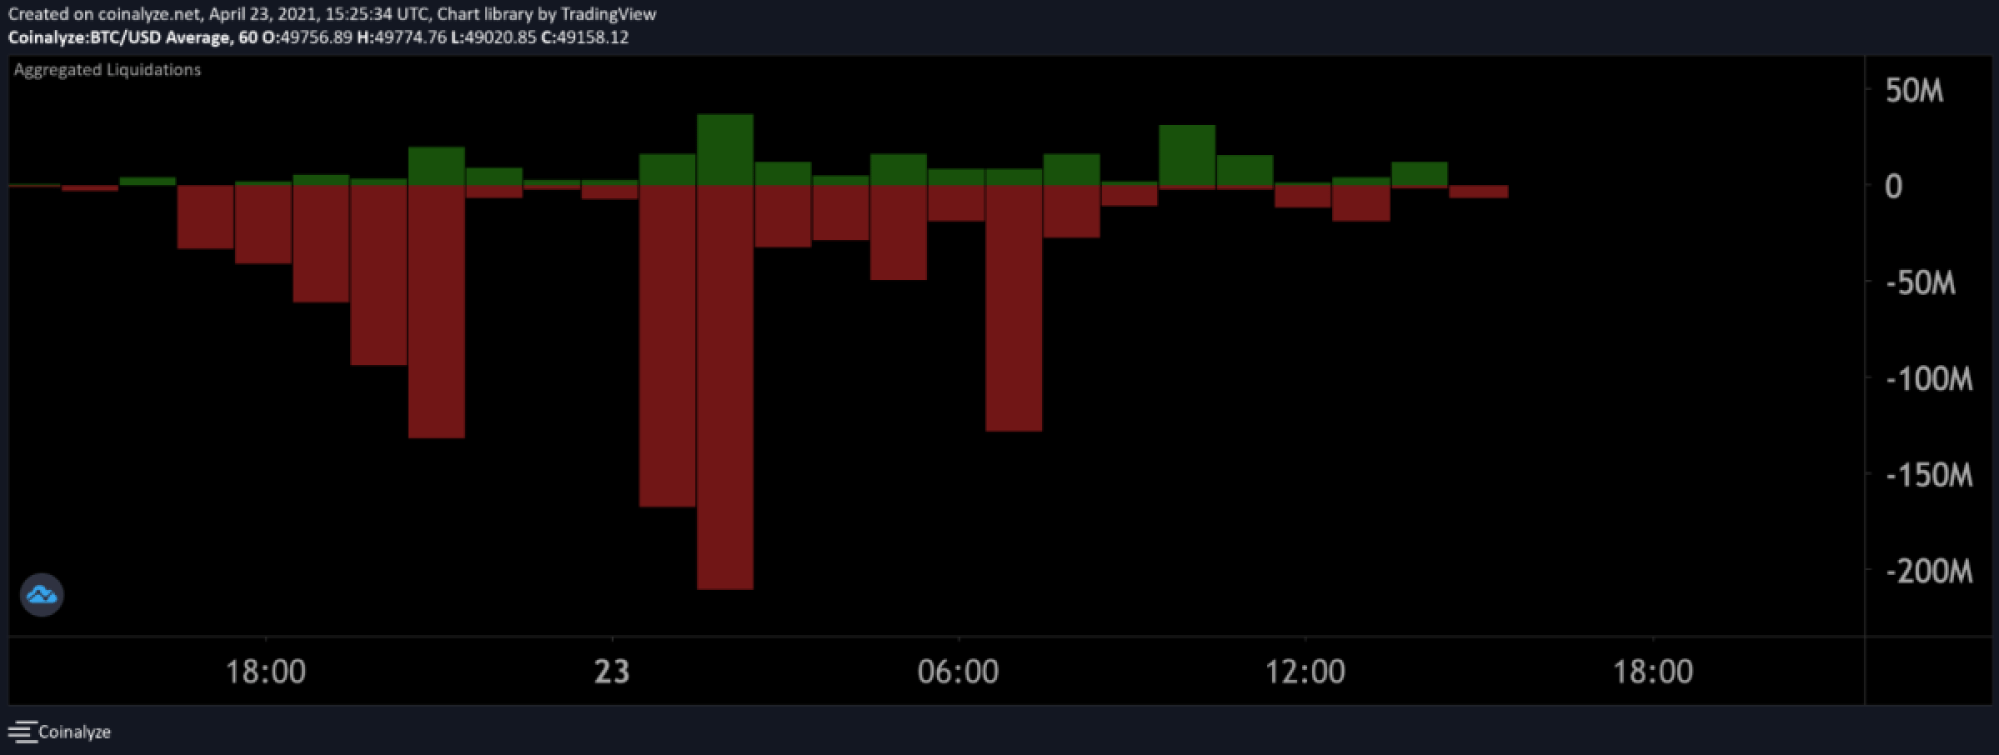 Liquidated Long Positions over the Last 24 Hours Bitcoin